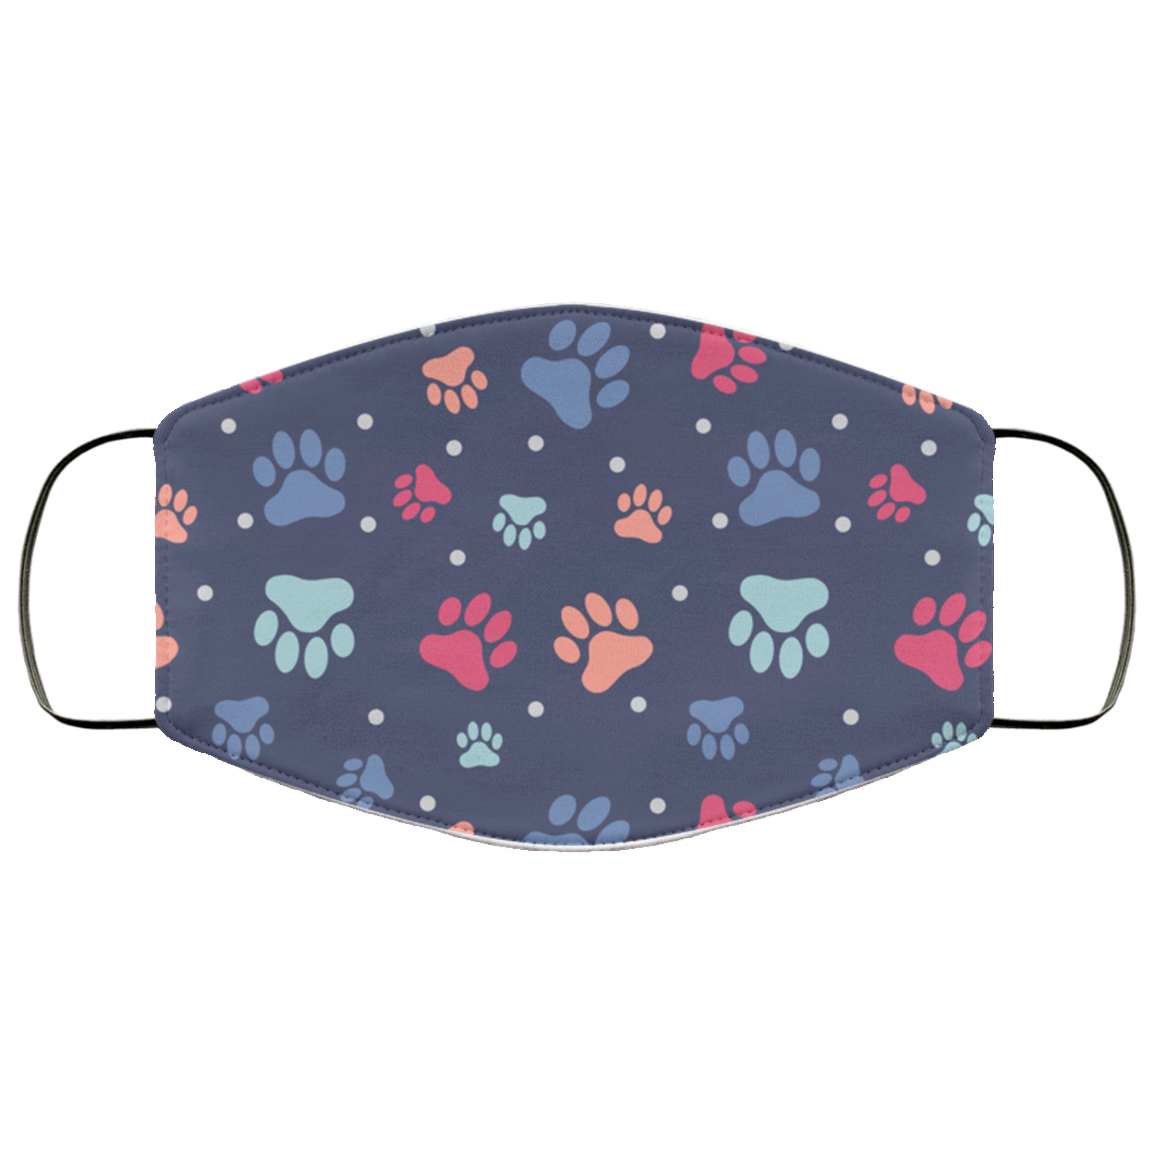 Colorful Paws Premium Face Mask